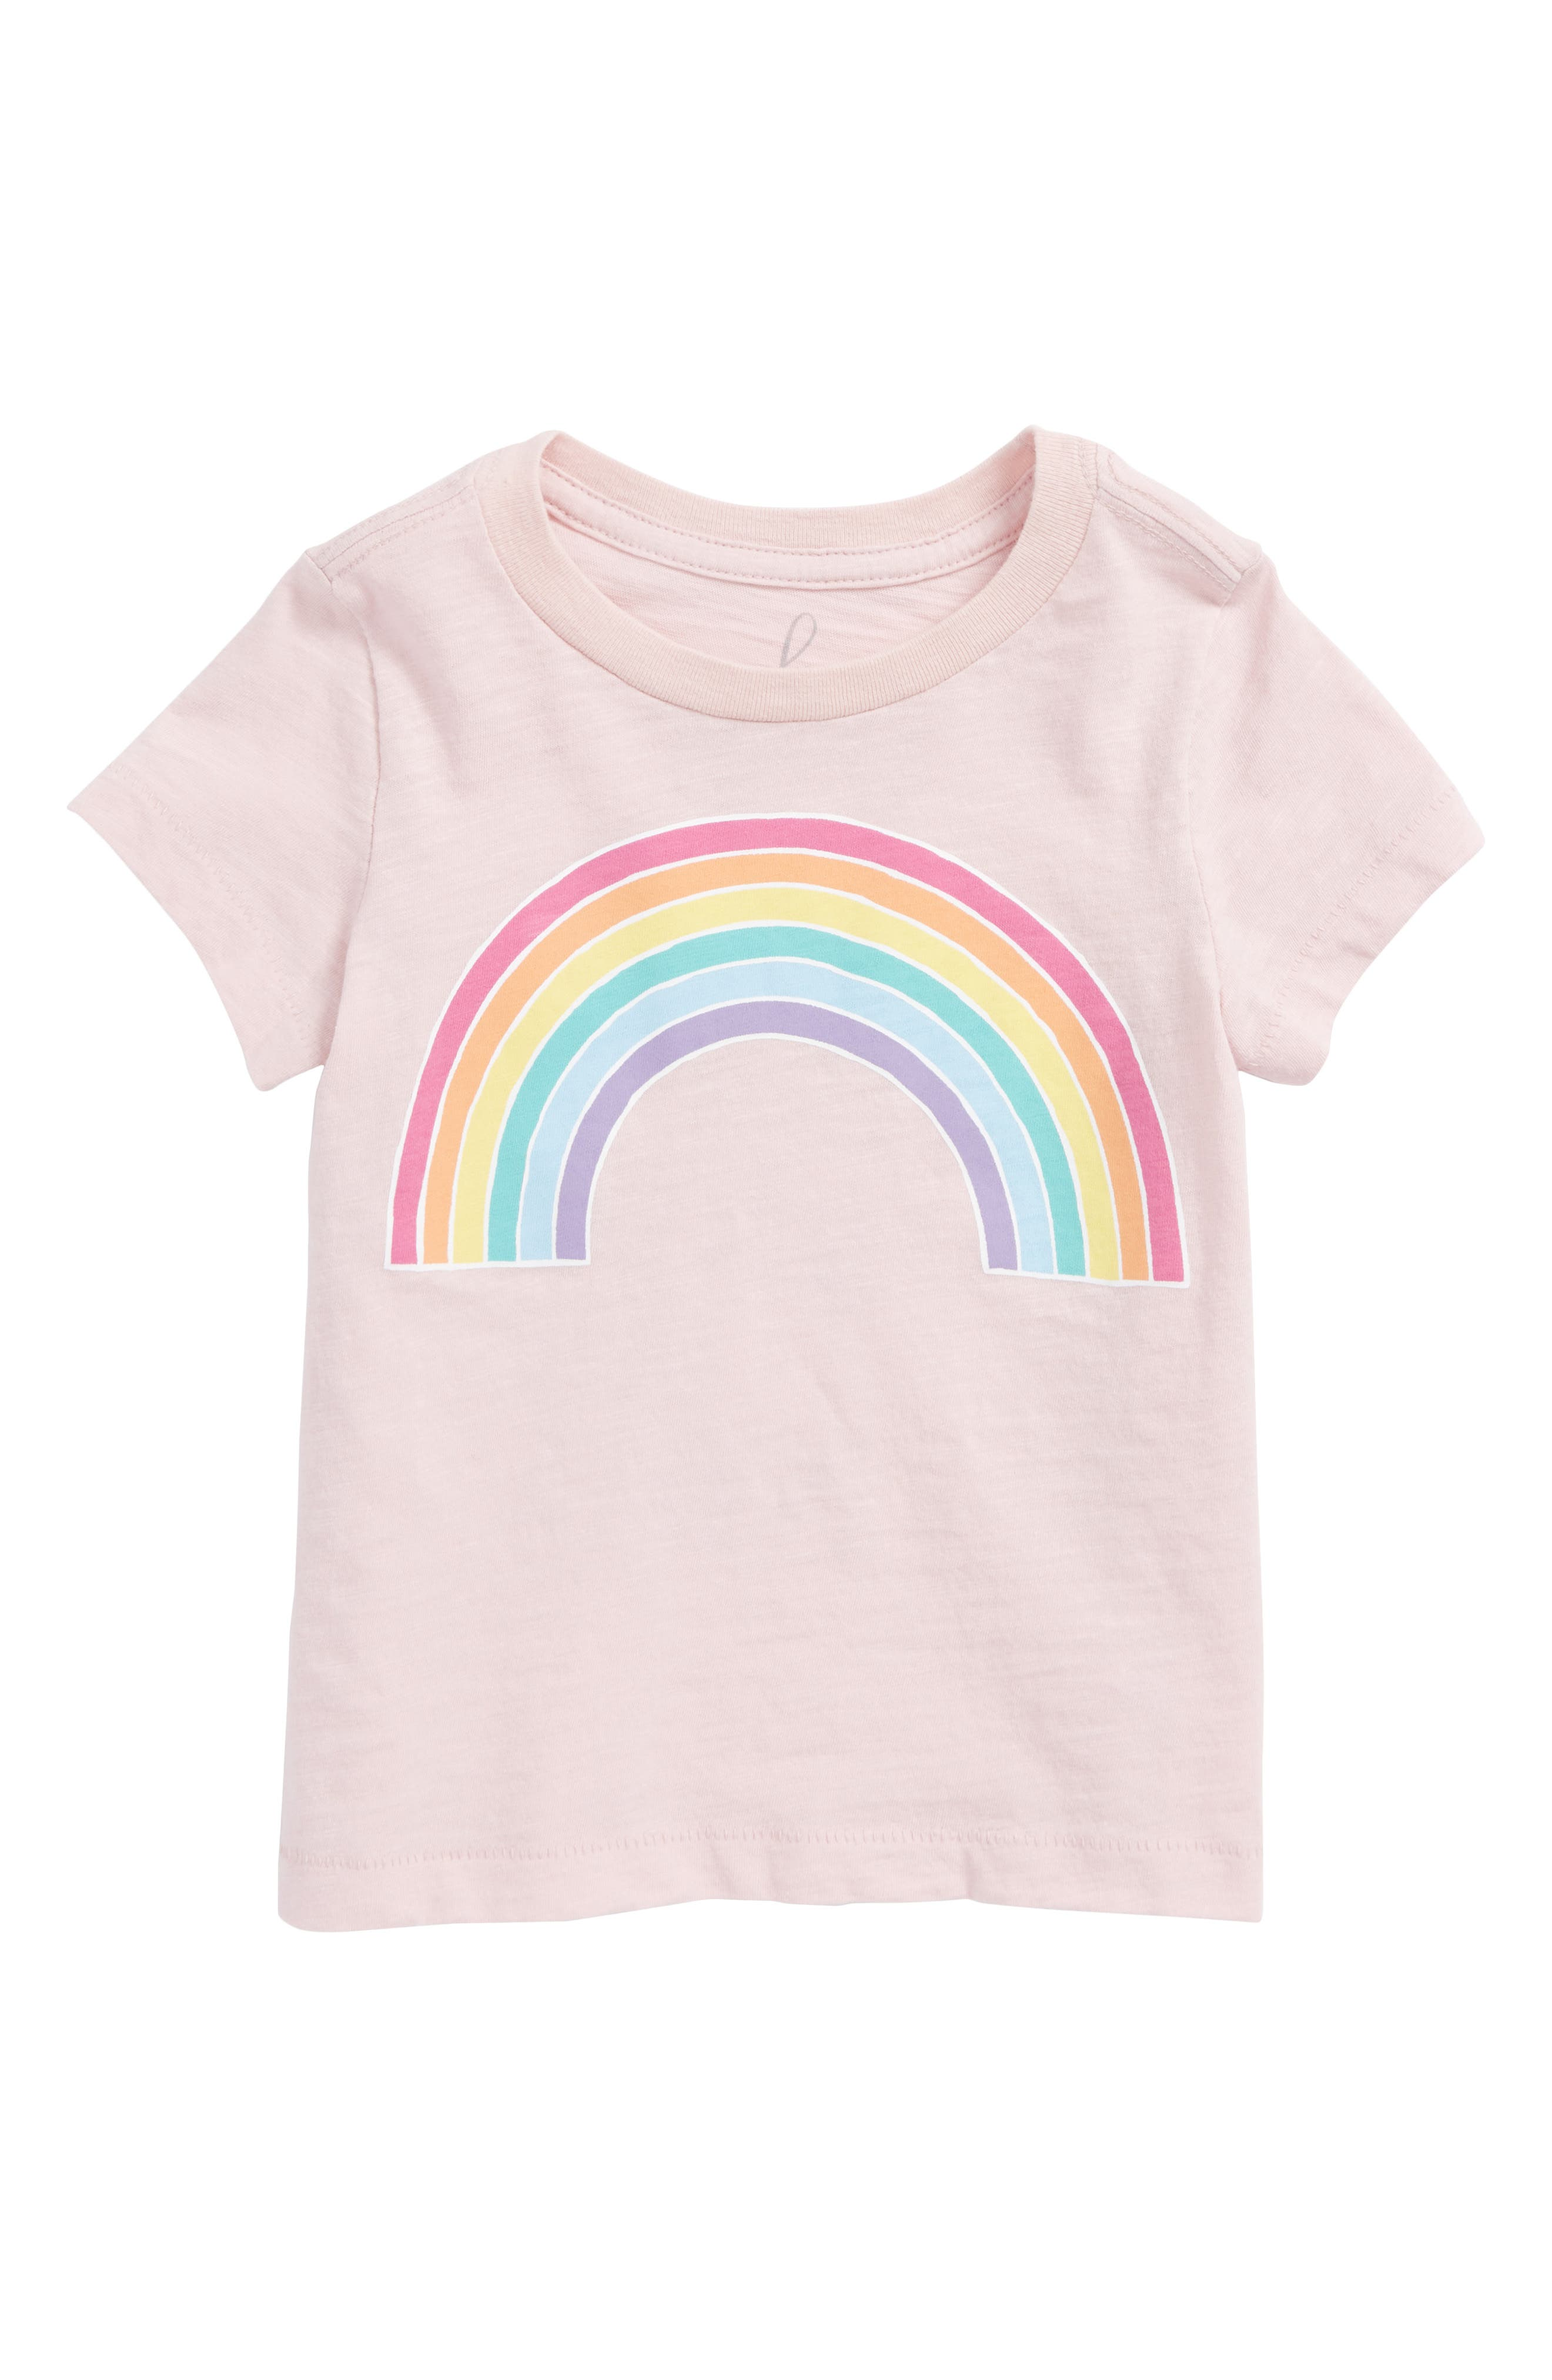 Rainbow Graphic Tee,                             Main thumbnail 1, color,                             Light Pink